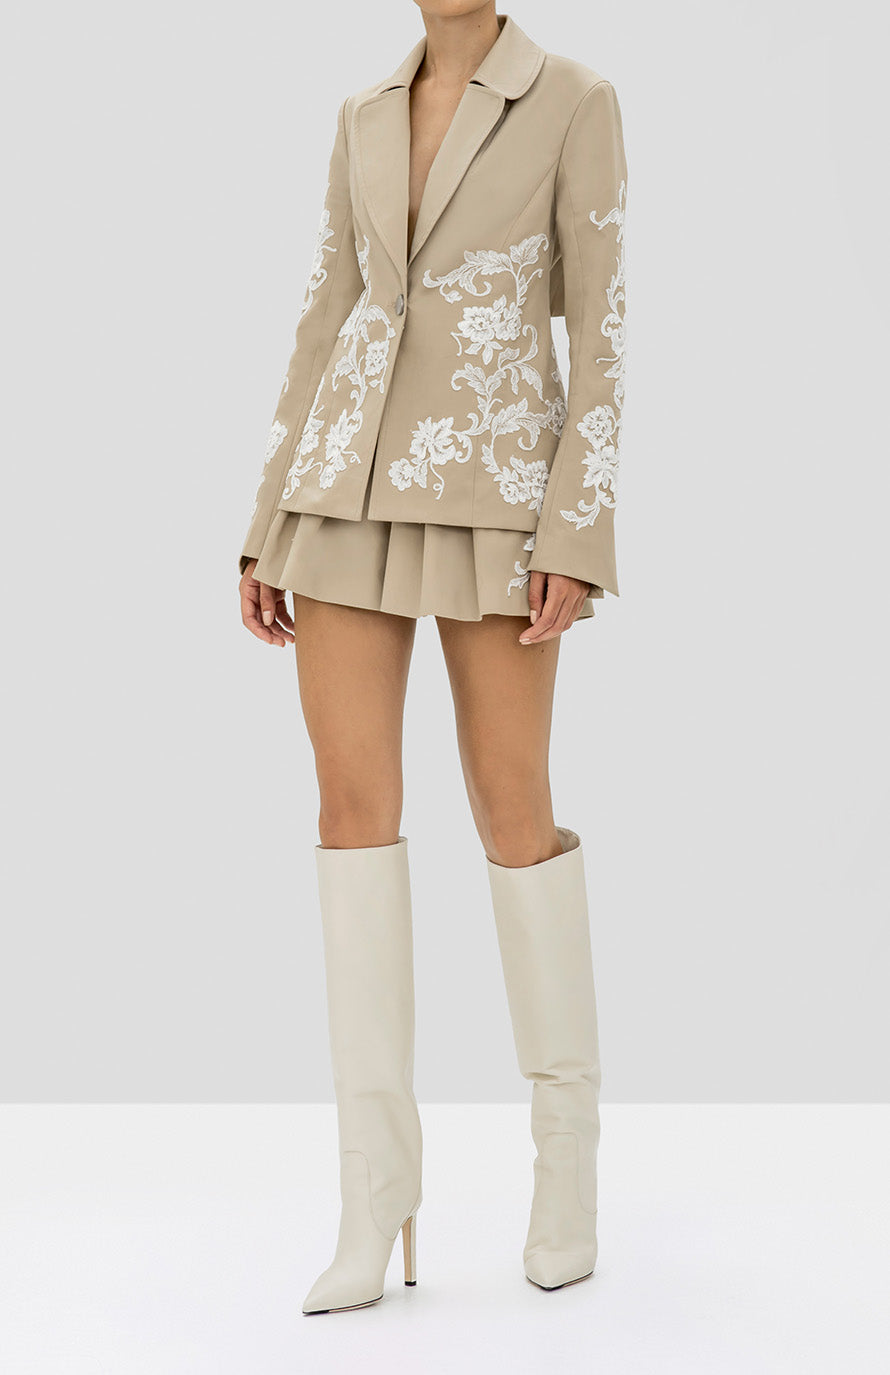 Alexis Cyrano Jacket and Gerona Shorts in Tan from the Holiday 2019 Ready To Wear Collection - Rear View